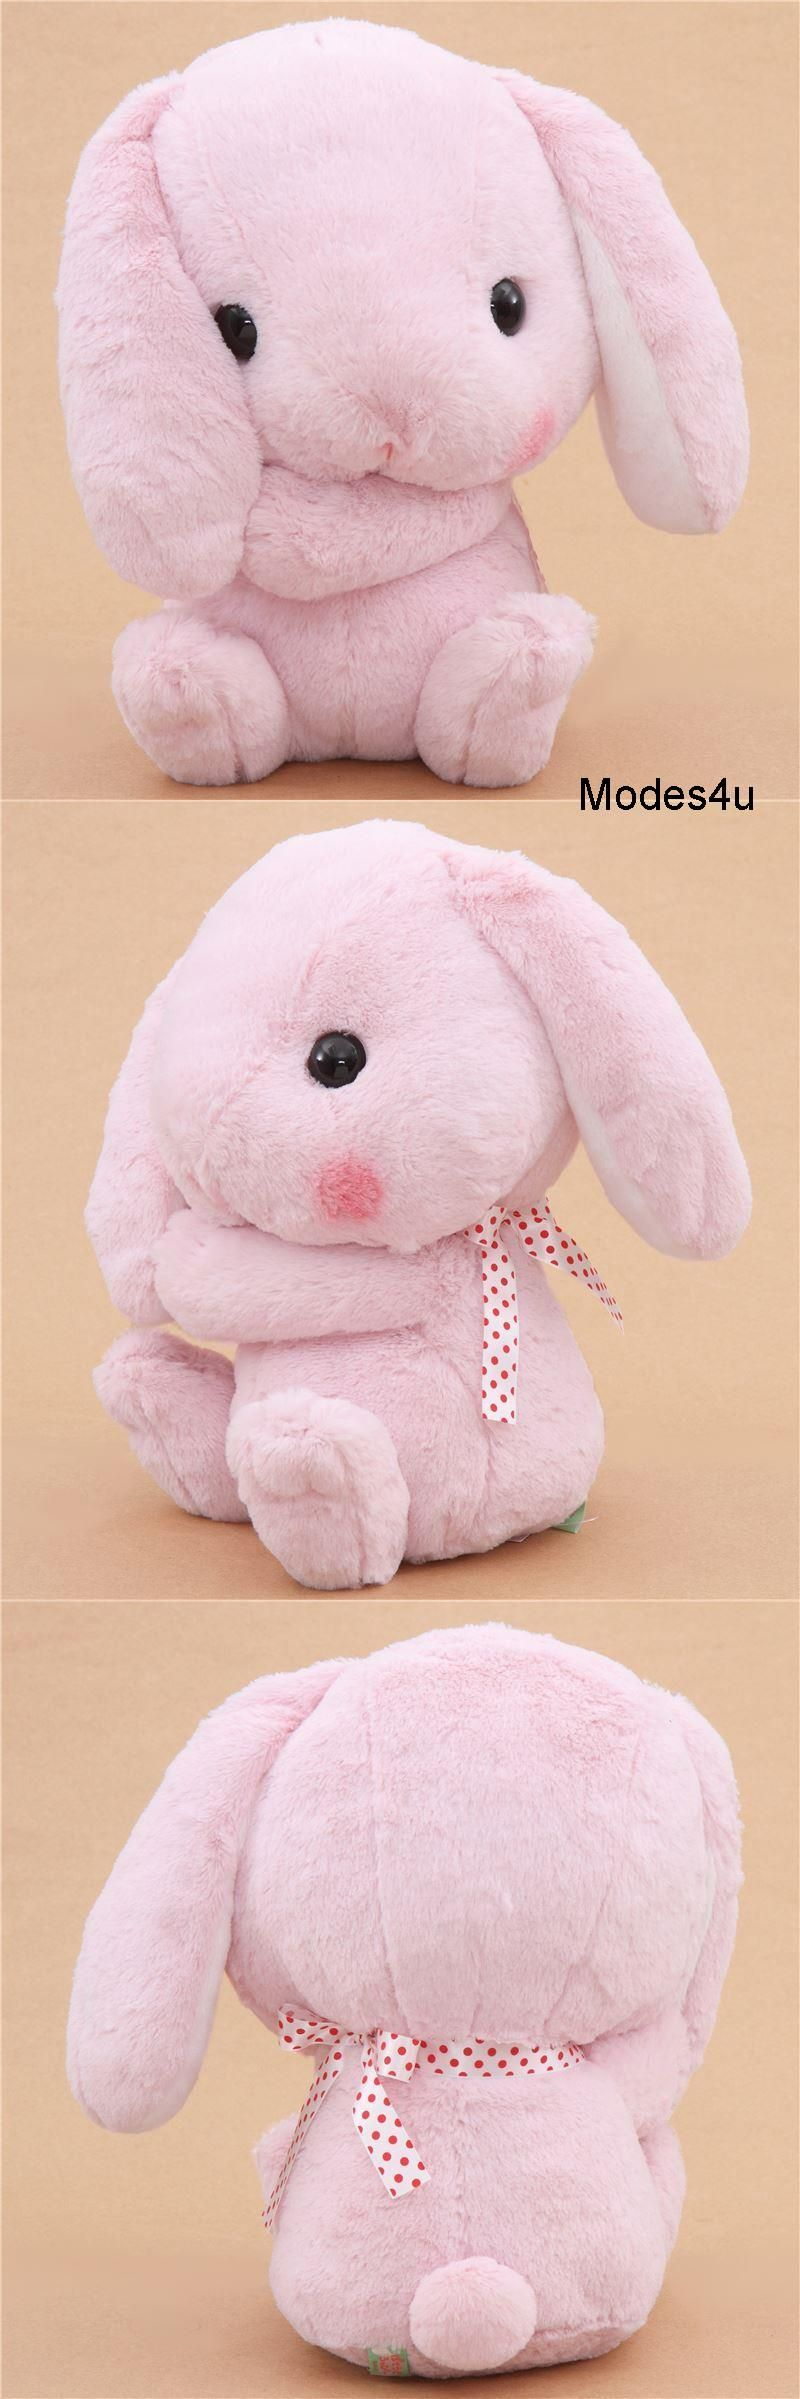 0988f3b0f21 Kawaii pink bunny plush with a white and red polka dot tie!